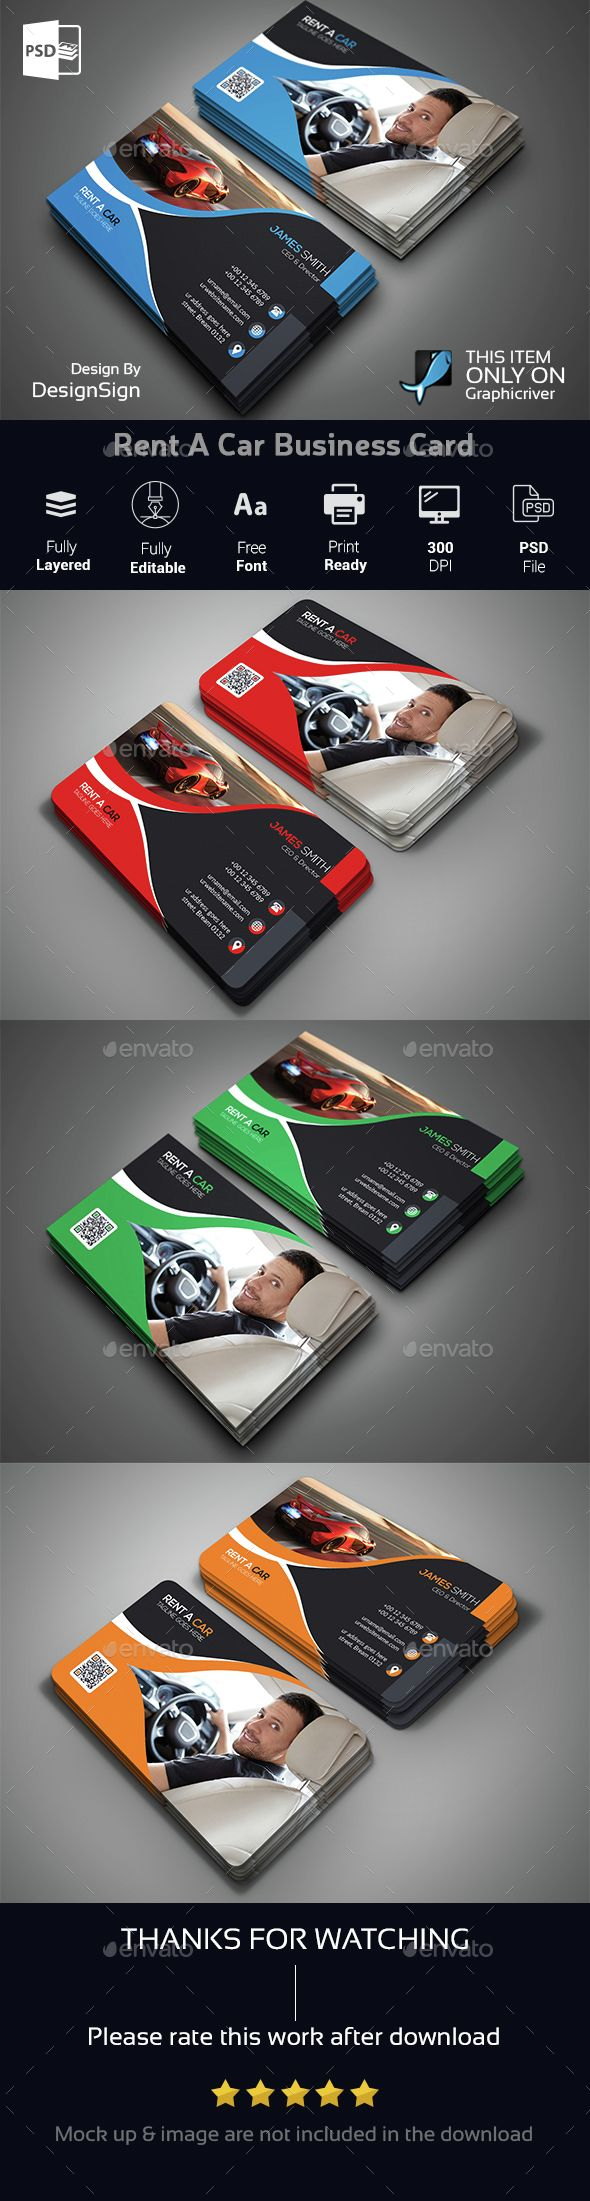 Rent a car business card photoshop psd car rental print rent a car business card photoshop psd car rental print available here httpsgraphicriveritemrent a car business card 14841416refpxcr reheart Images